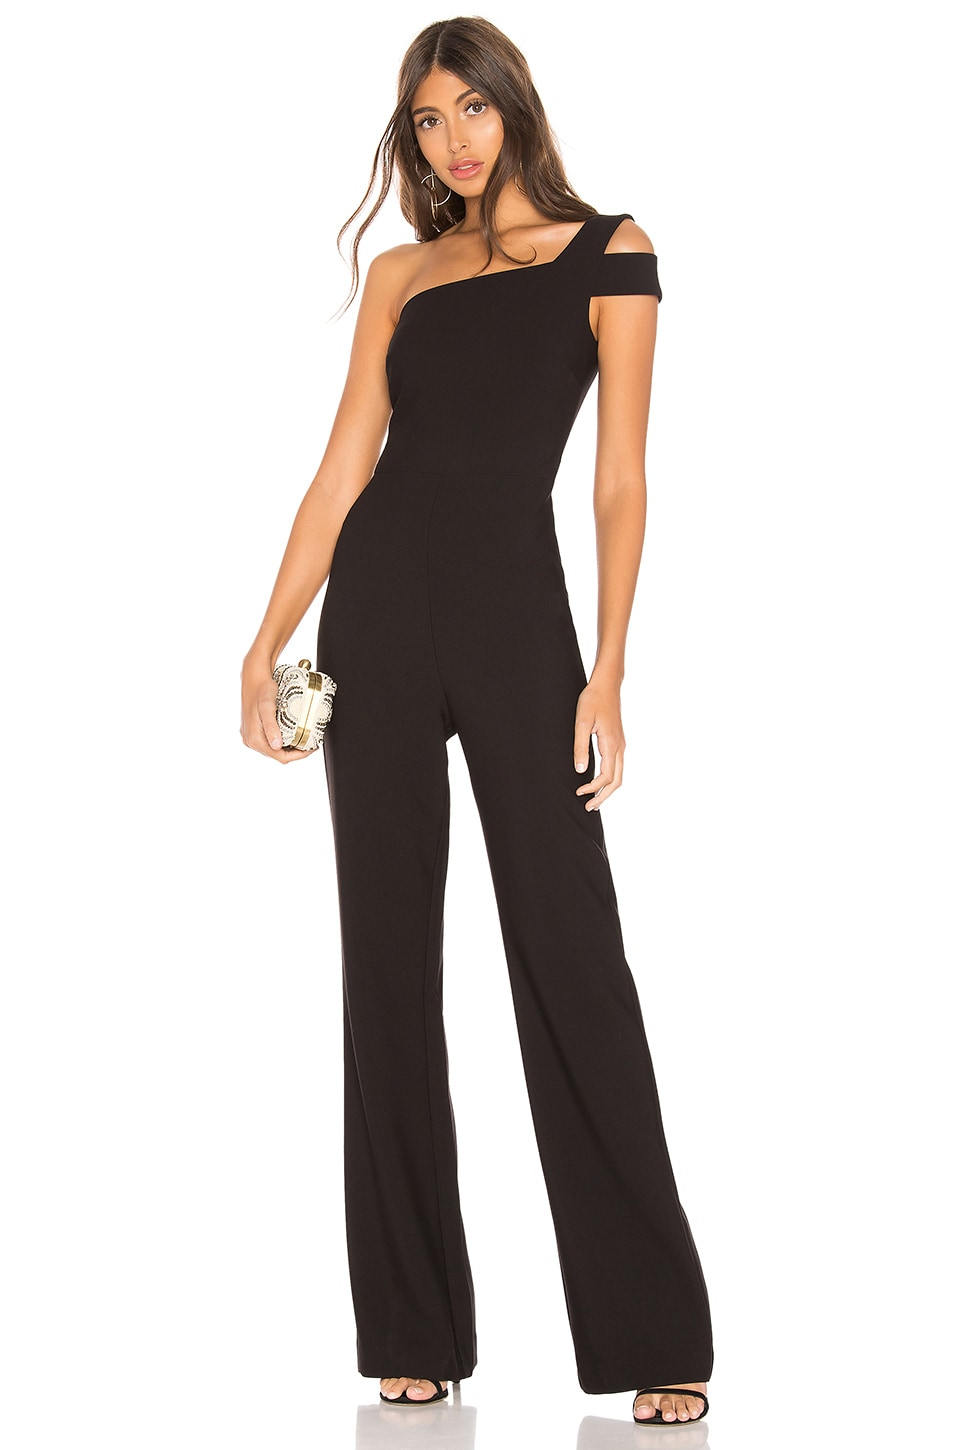 LIKELY Maxson Jumpsuit in Black